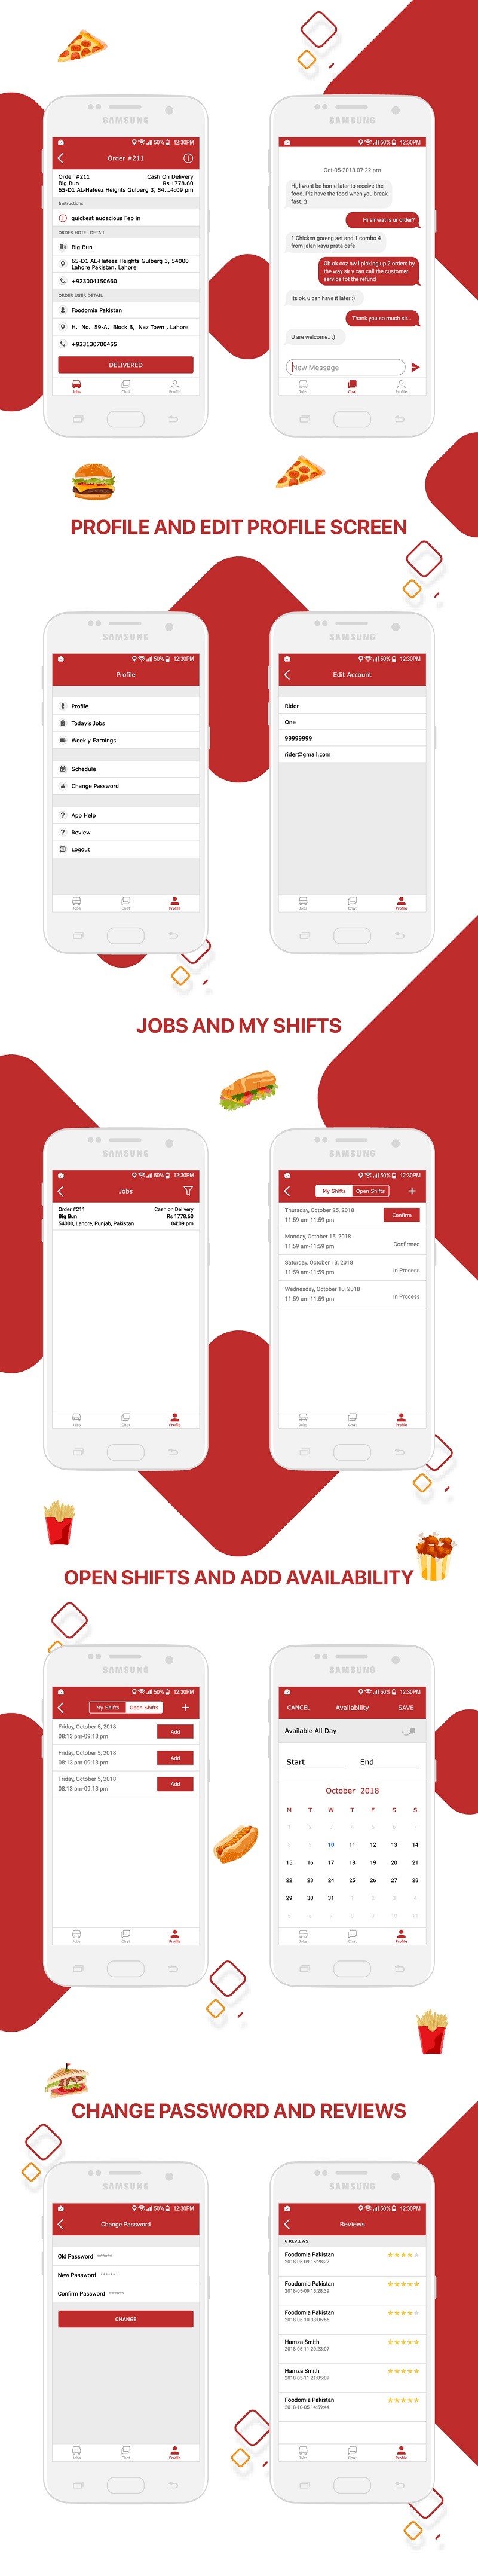 Restaurant Food Delivery & Ordering System With Delivery Boy - Android v1.1.2 - 11